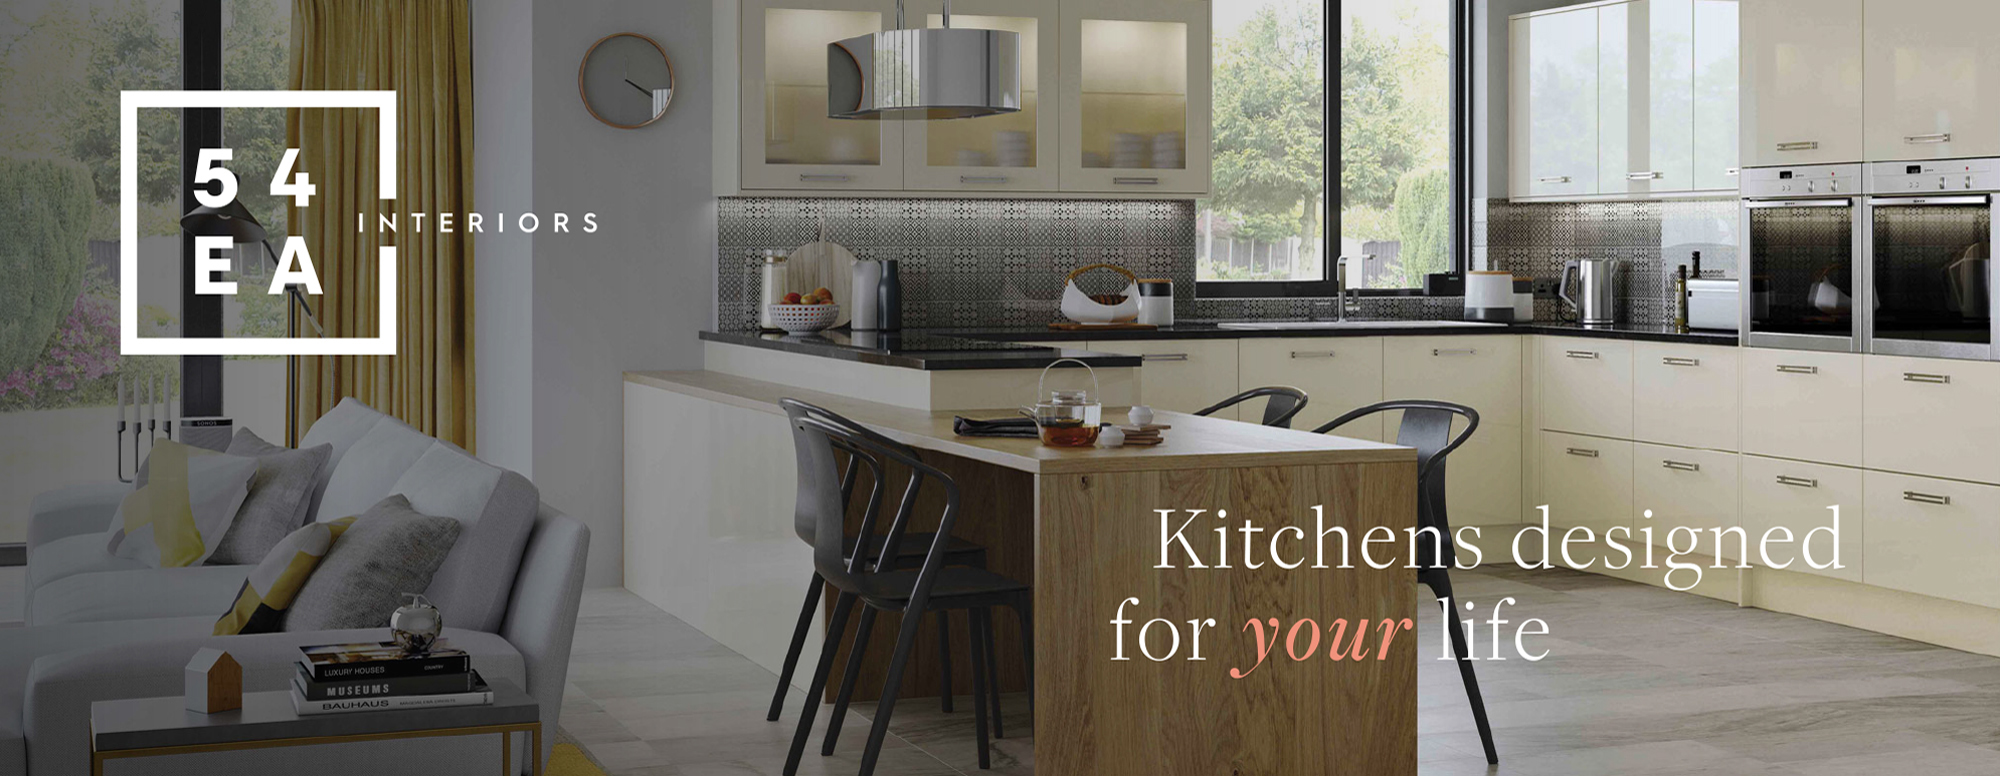 Kitchens designed for your life